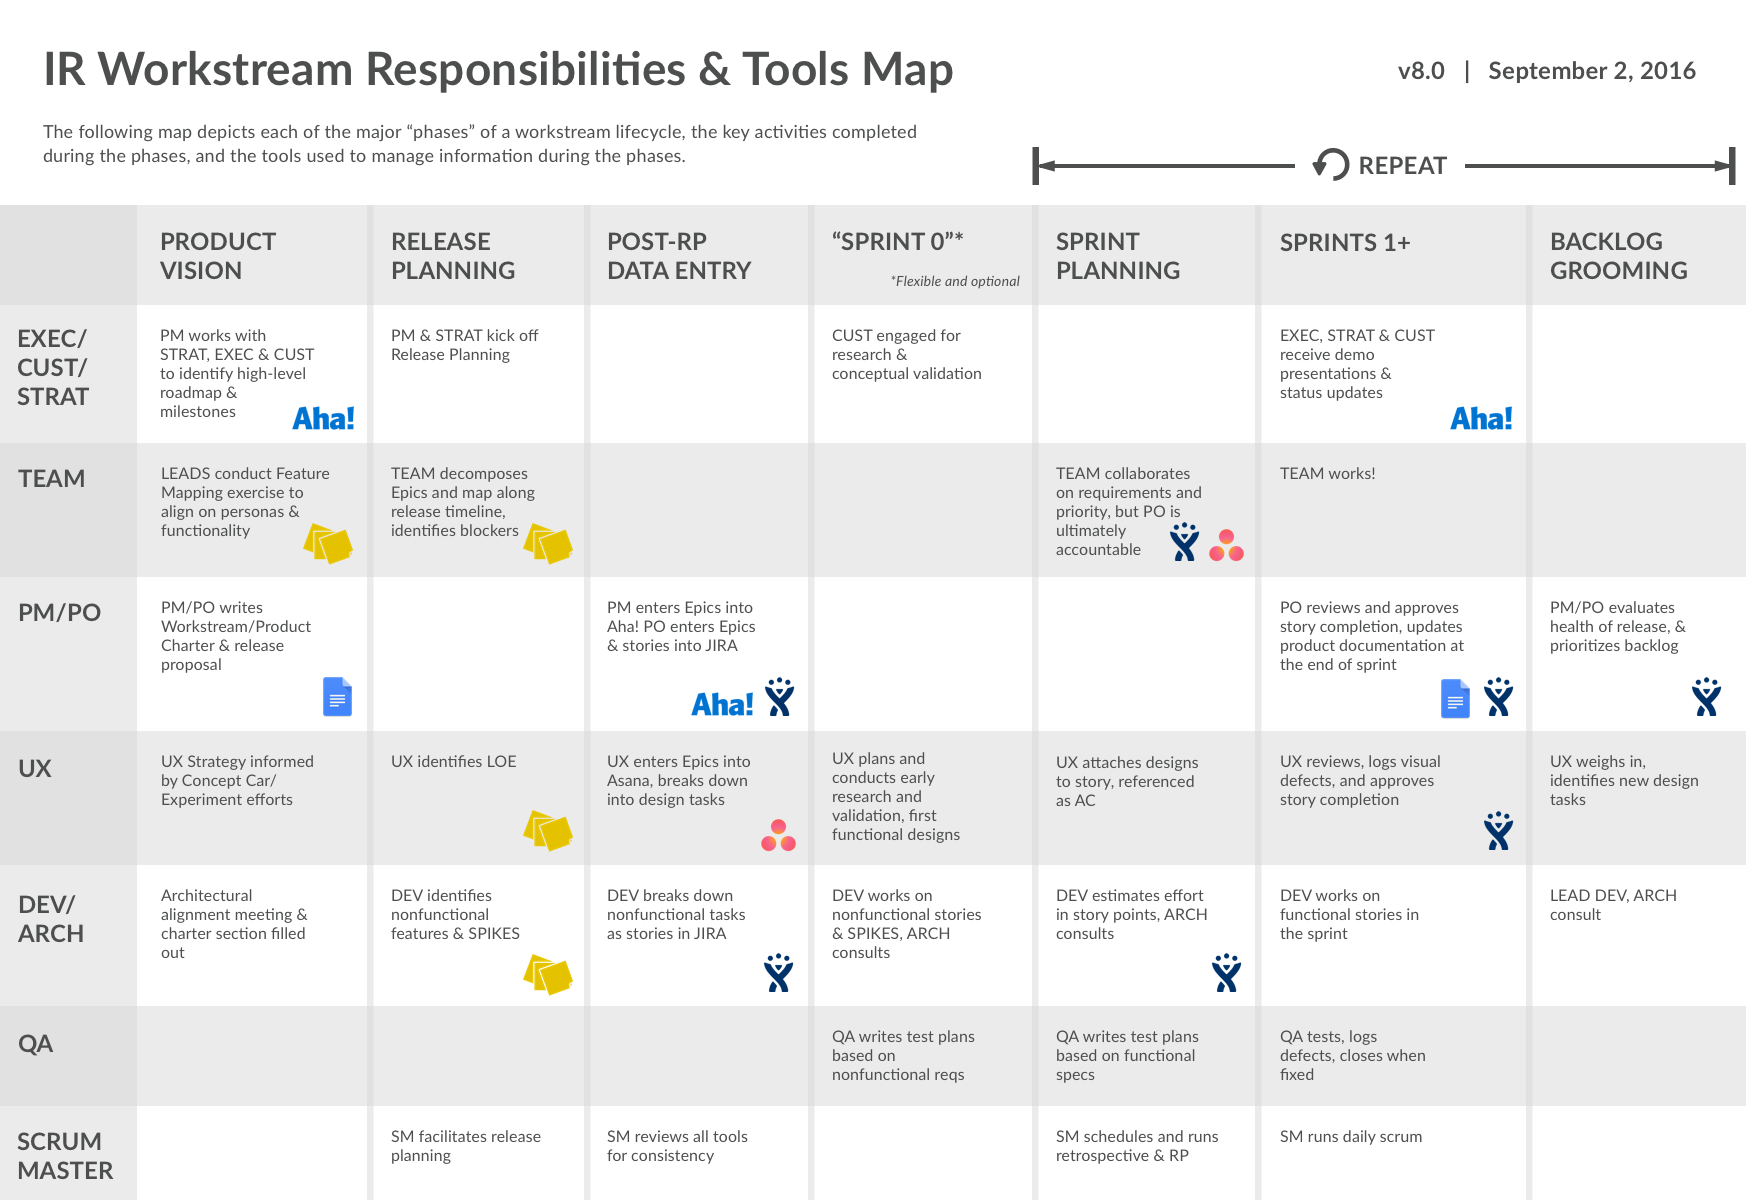 IR Workstream Responsibilities & Tools Map_v8.png